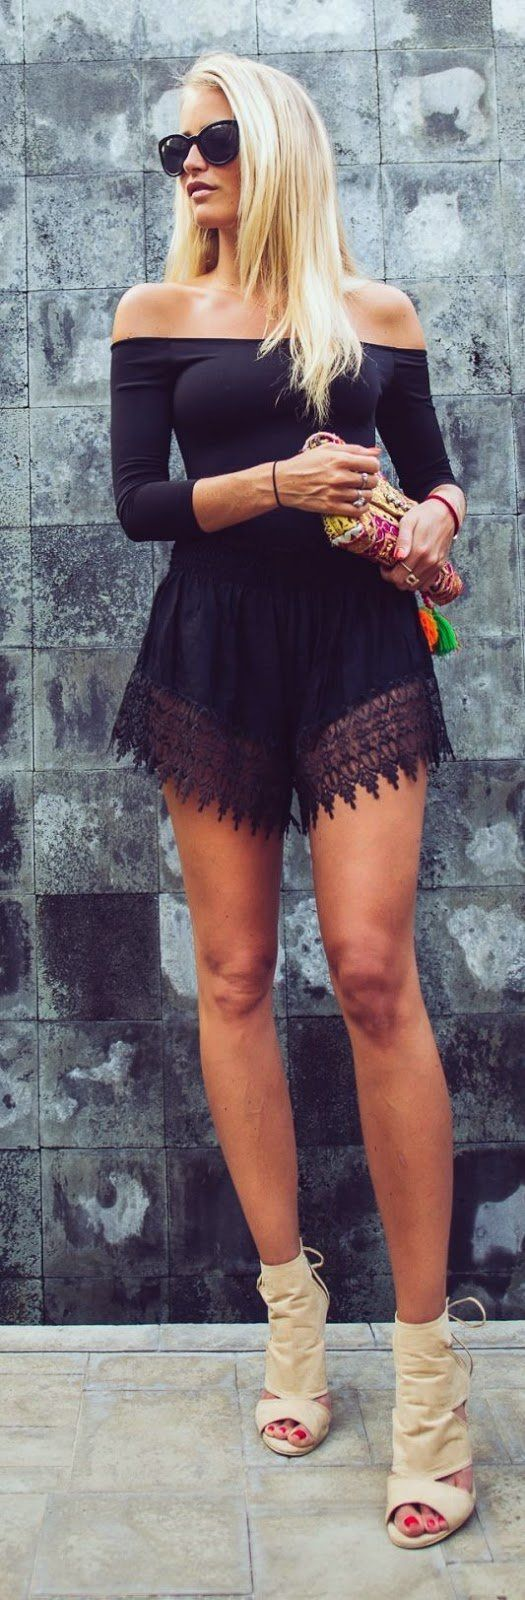 @roressclothes closet ideas #women fashion outfit #clothing style apparel Black Lacey Romper